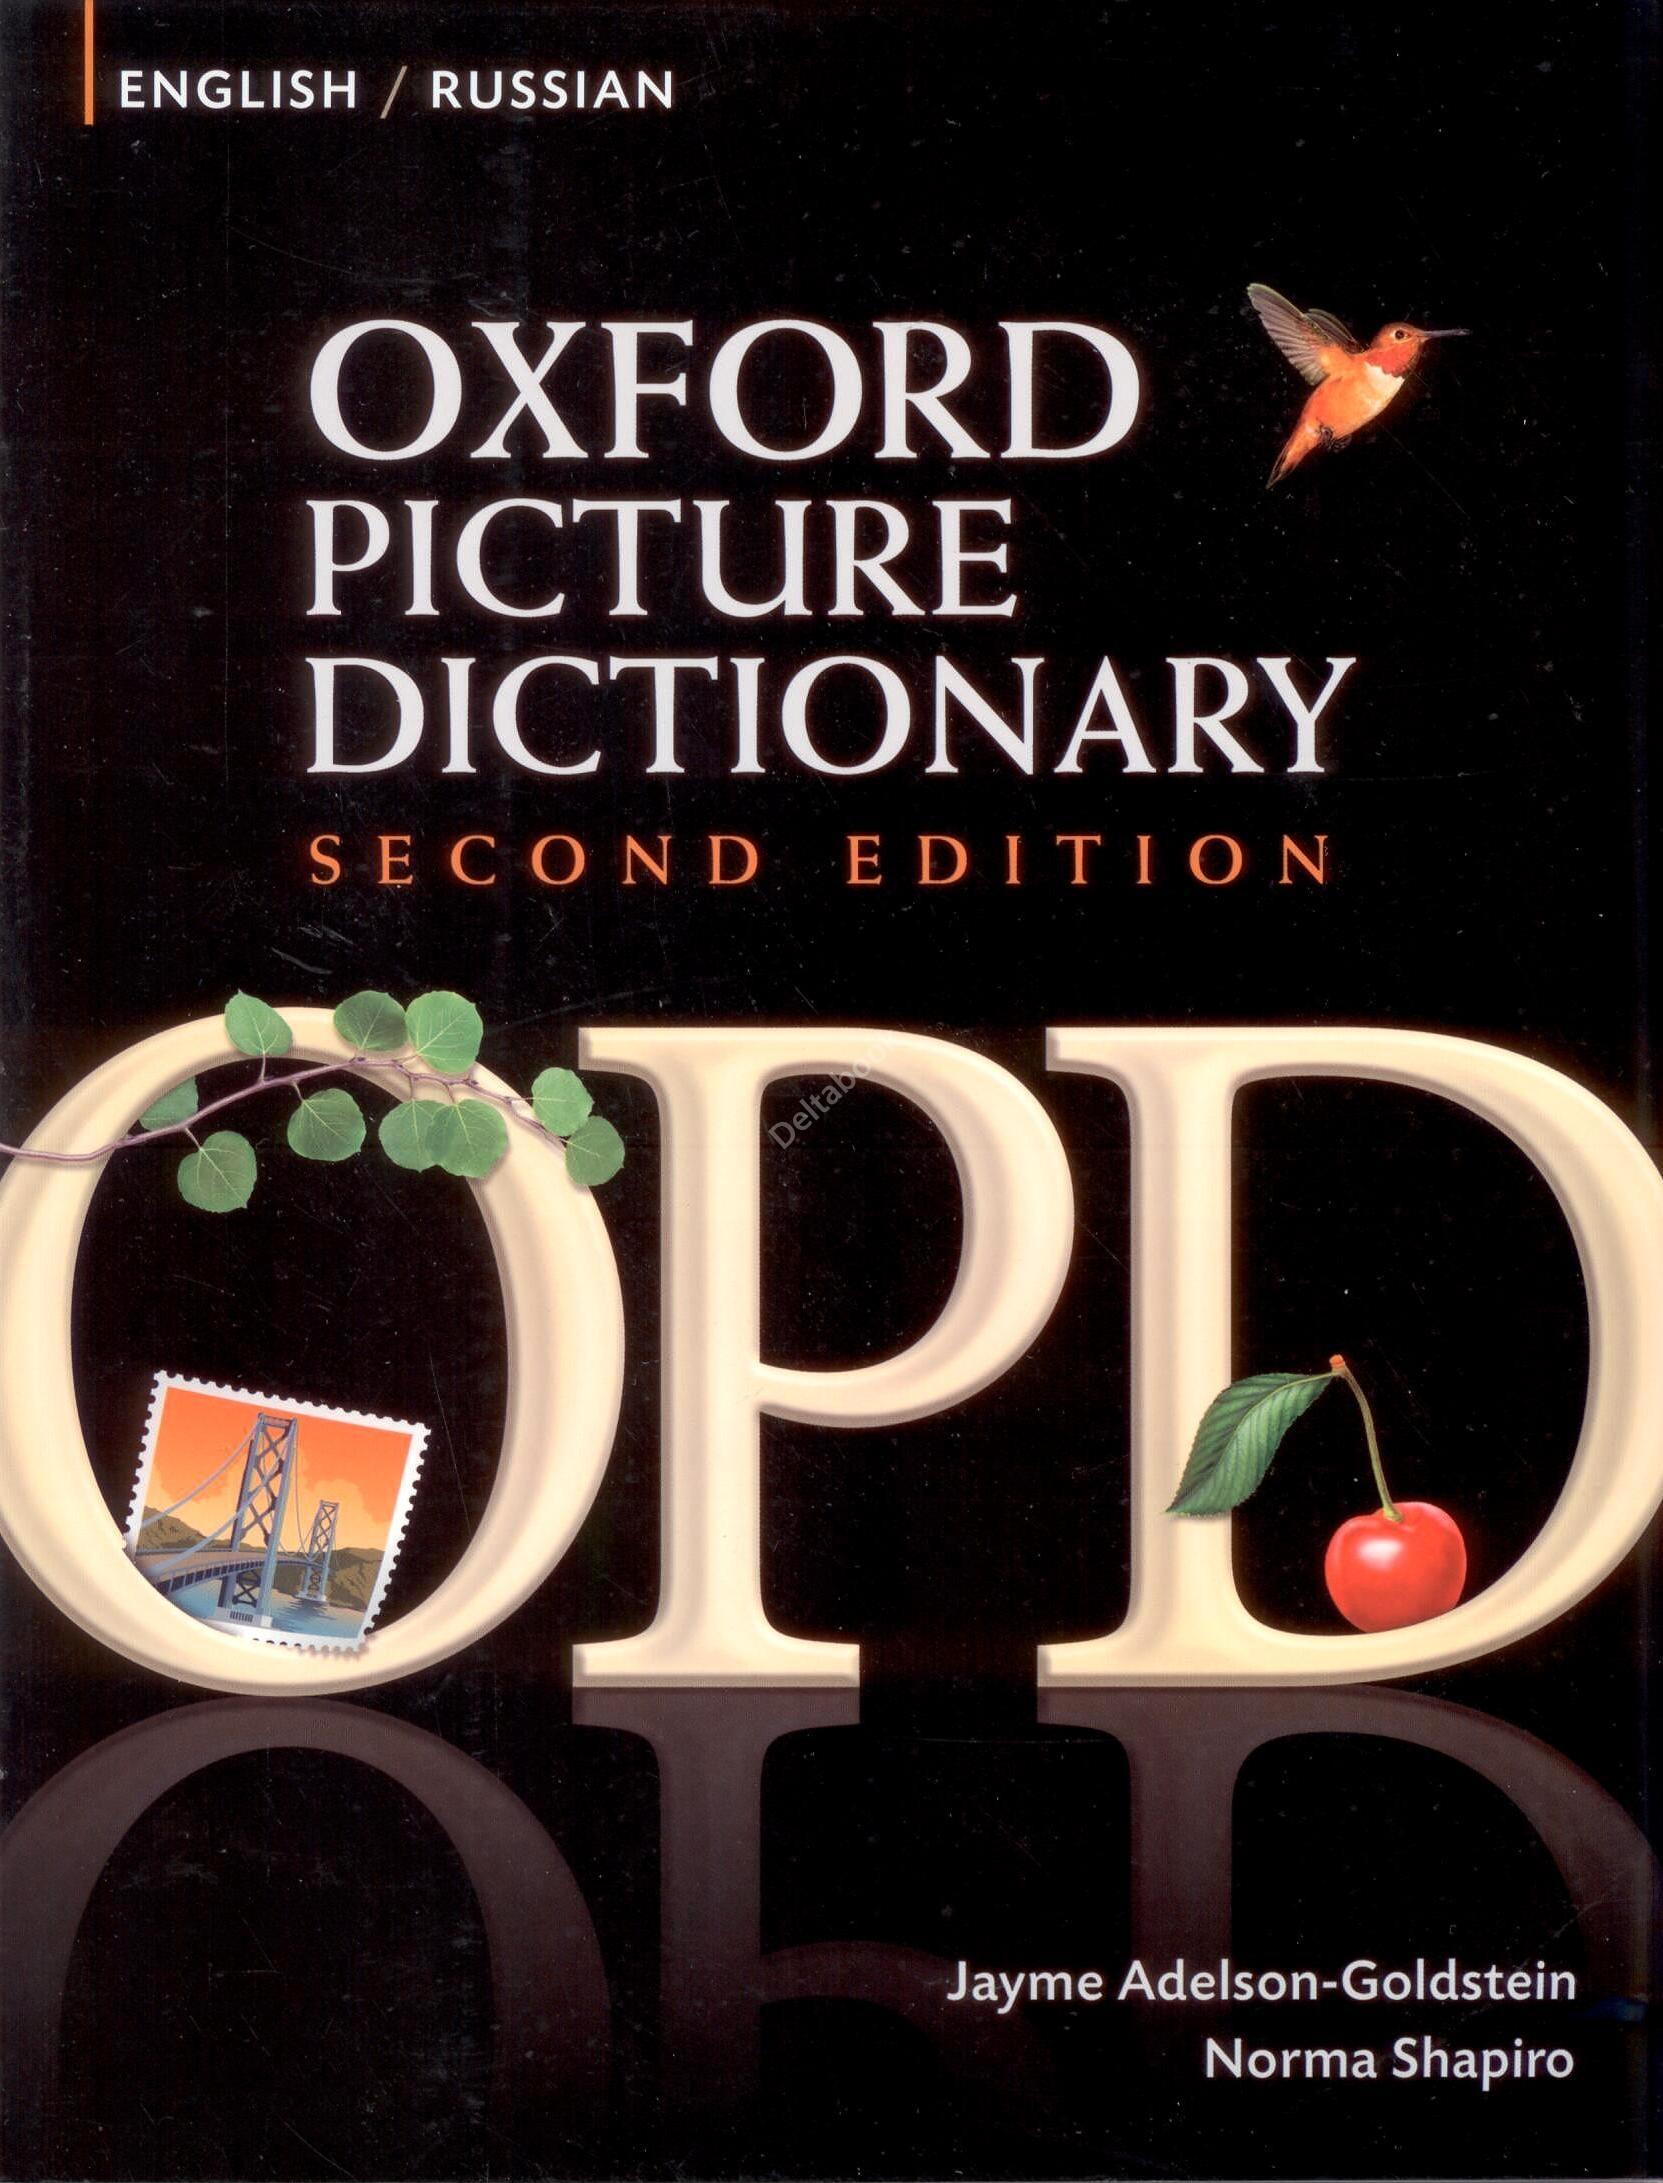 Oxford Picture Dictionary (Second Edition) English-Russian